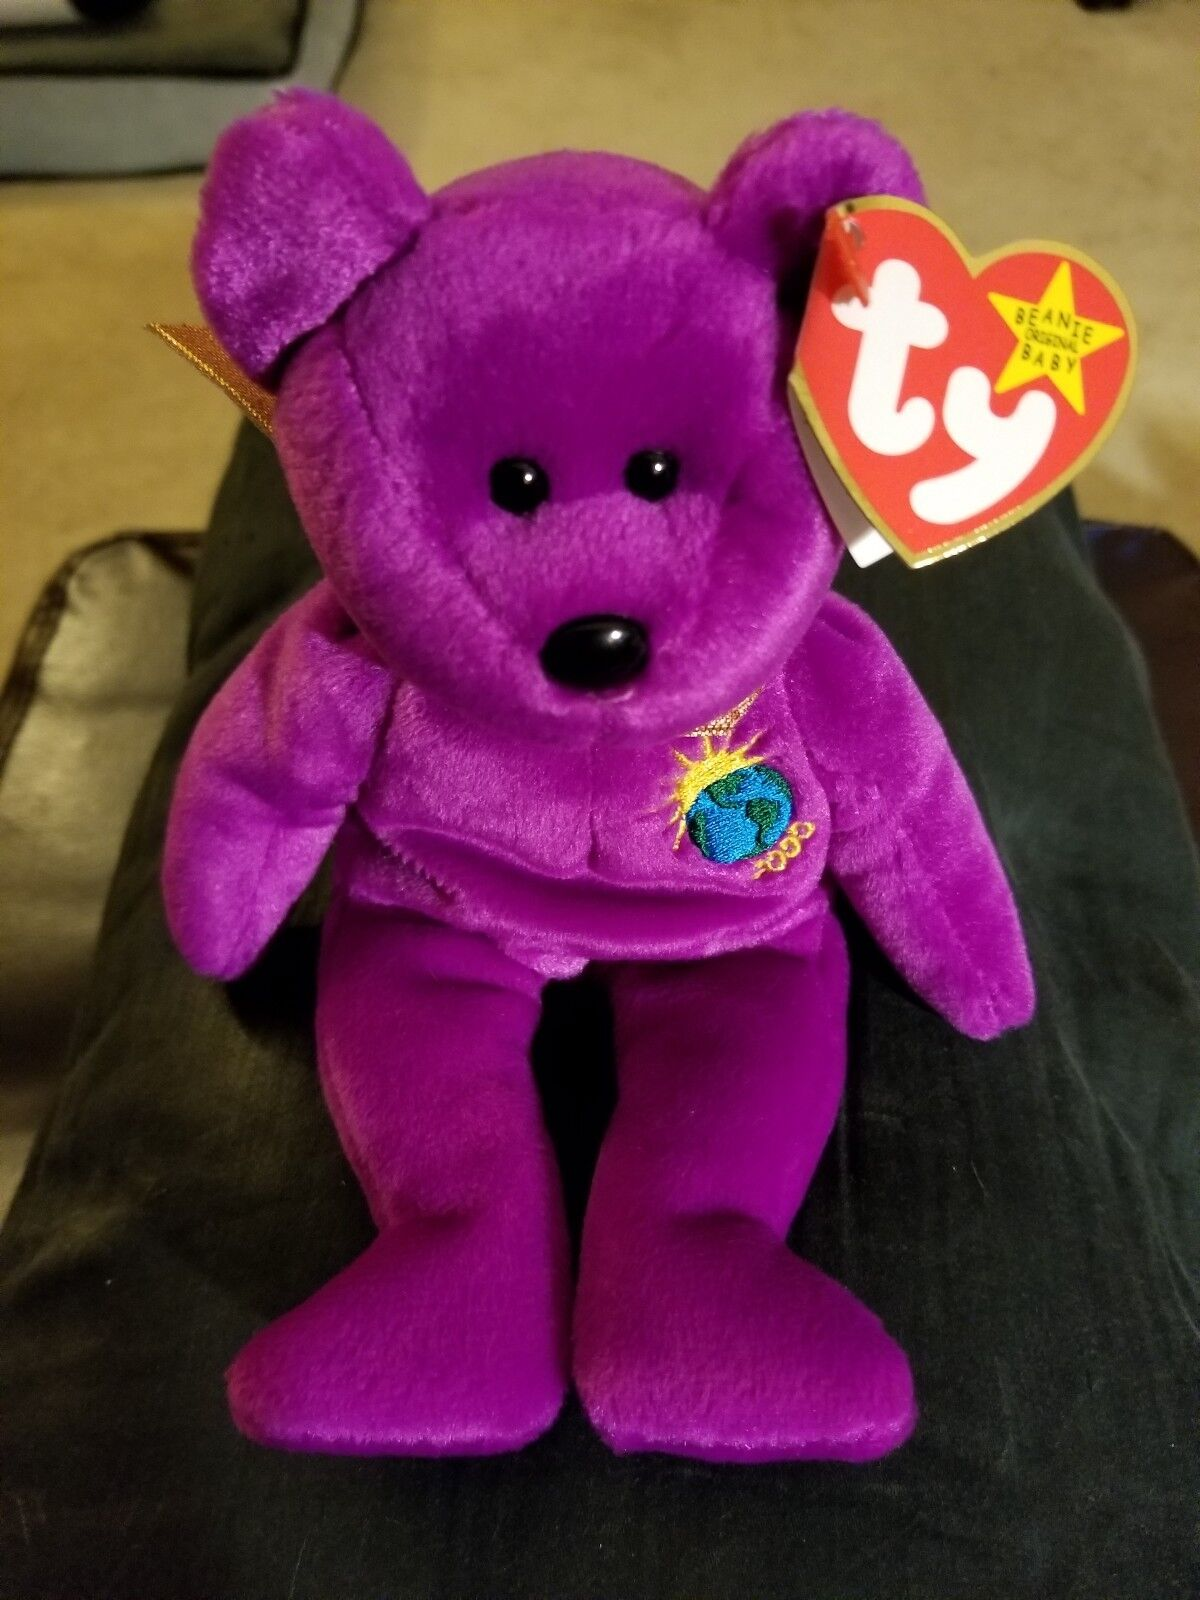 Ty Beanie Baby Babies Millennium Millennium Millennium Bear 2000 with Errors  Mint condition  422f88